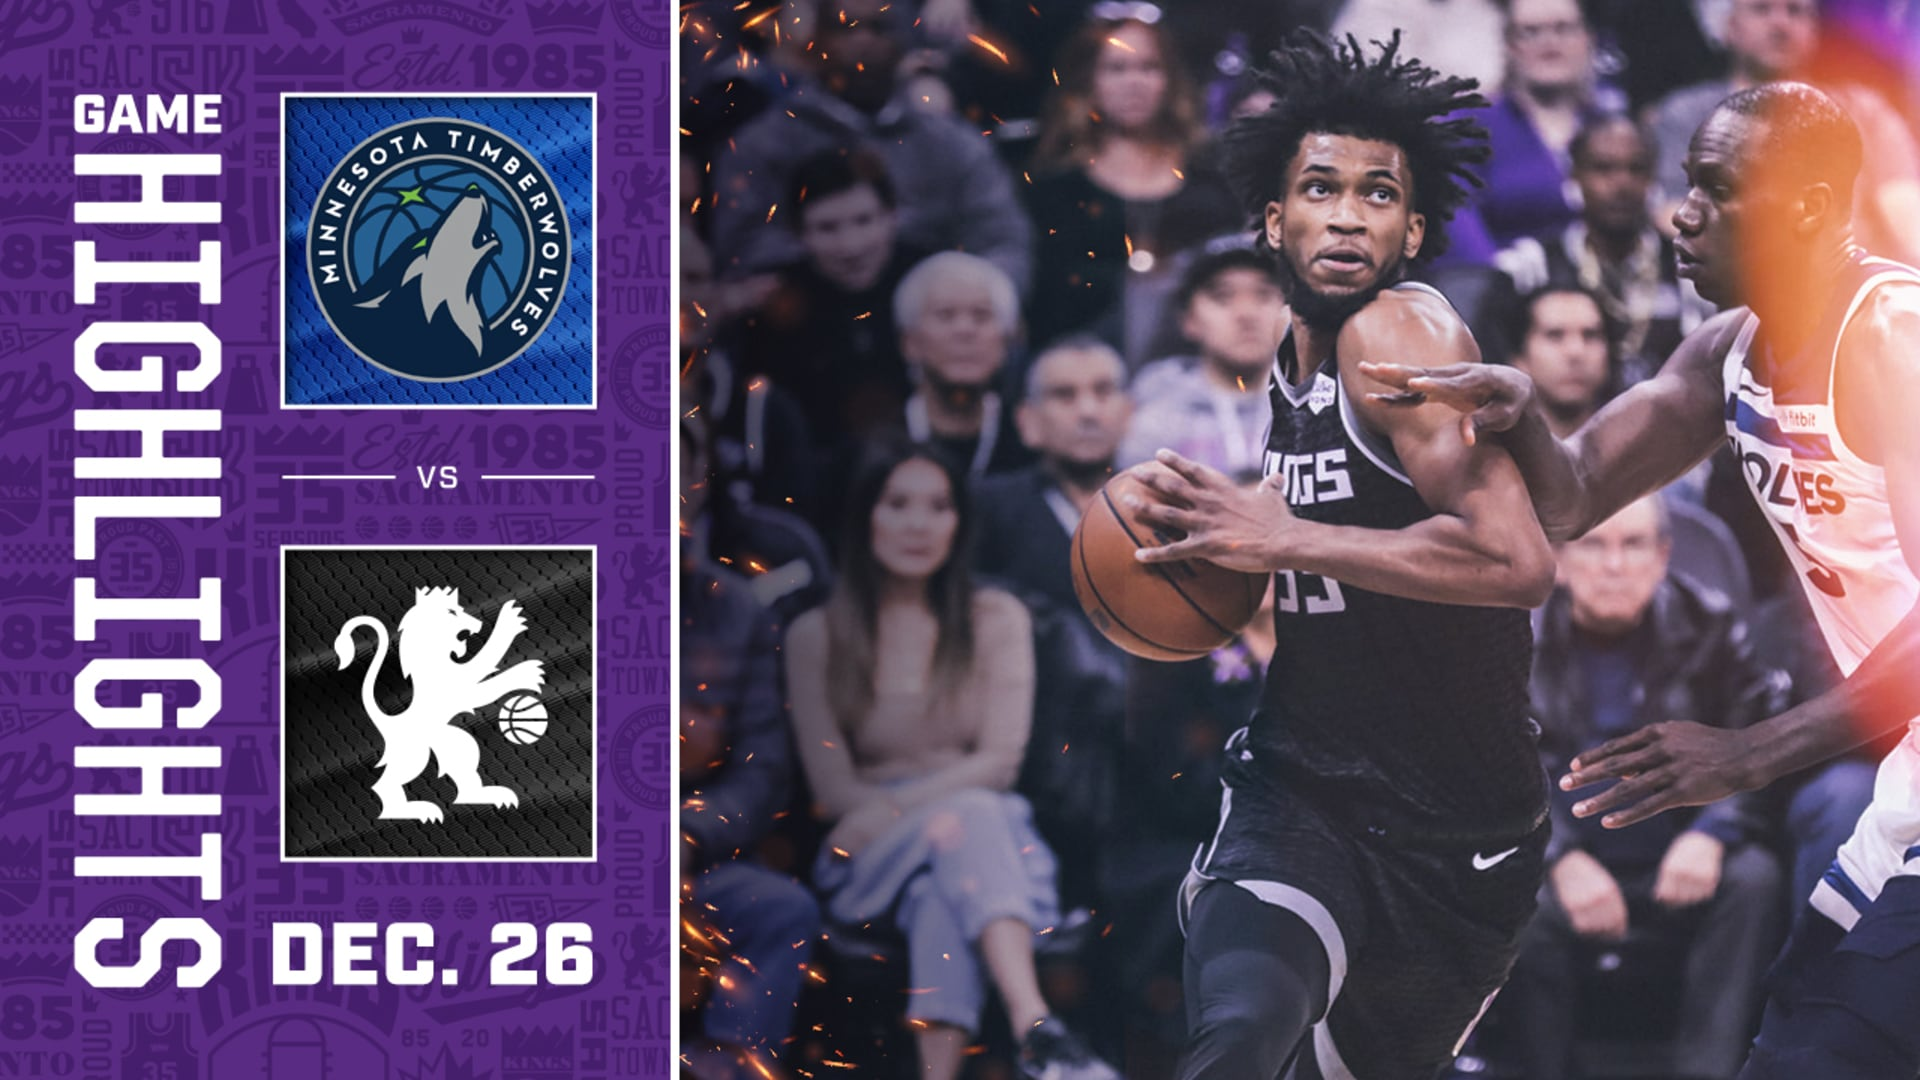 Down to DOUBLE OT in Sacramento | Kings vs Timberwolves